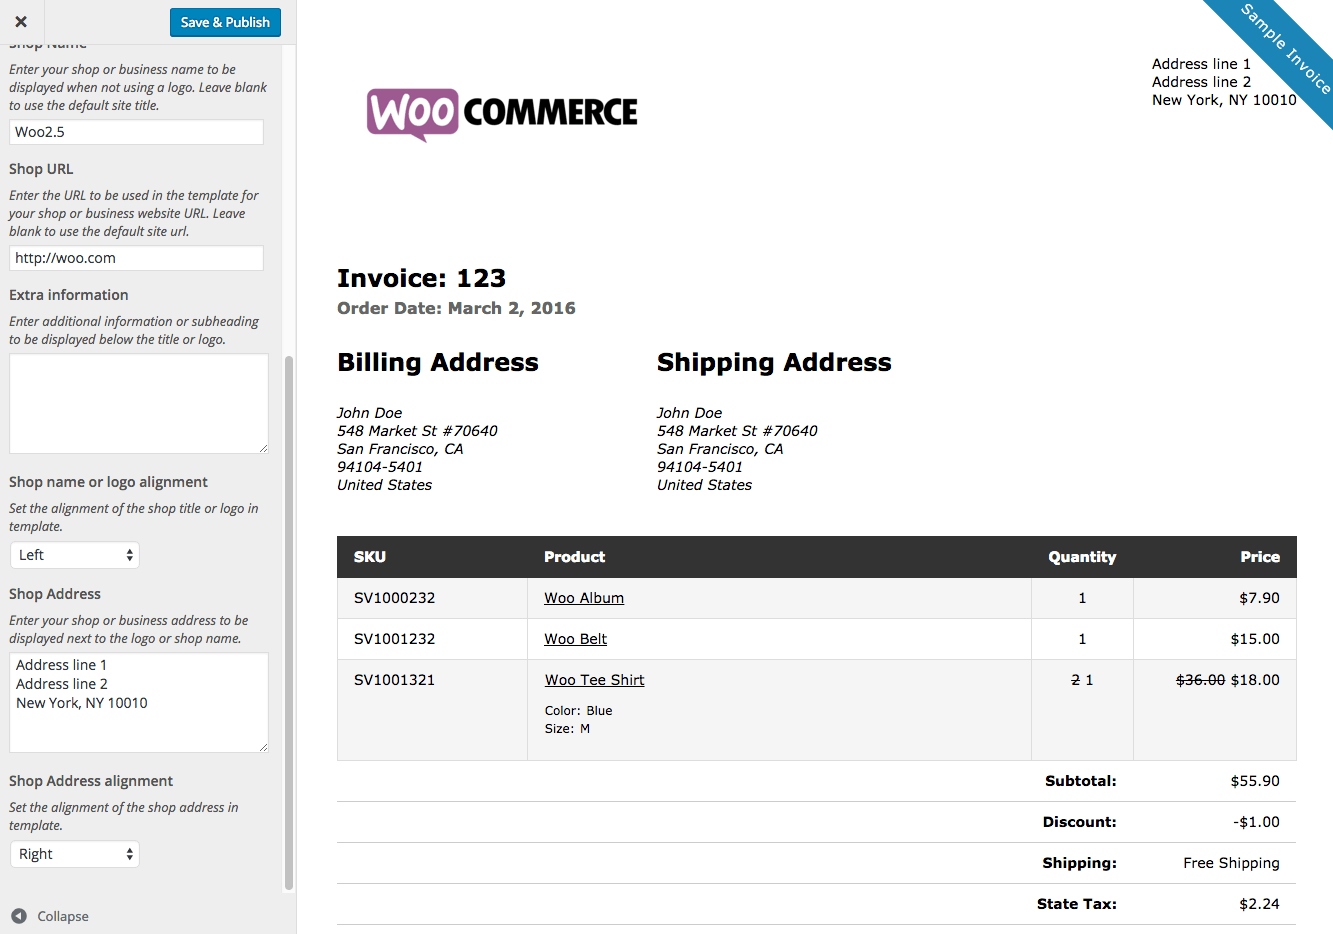 Floobydustus  Pleasing Print Invoices Amp Packing Lists  Woocommerce With Lovable Woocommerce Print Invoices  Packing Lists Customizer With Awesome What Is A Sales Receipt Also Mobile Receipt In Addition How To Print Receipts And Forever  Receipt As Well As Child Support Receipt Template Additionally Alaska Airlines Baggage Receipt From Woocommercecom With Floobydustus  Lovable Print Invoices Amp Packing Lists  Woocommerce With Awesome Woocommerce Print Invoices  Packing Lists Customizer And Pleasing What Is A Sales Receipt Also Mobile Receipt In Addition How To Print Receipts From Woocommercecom